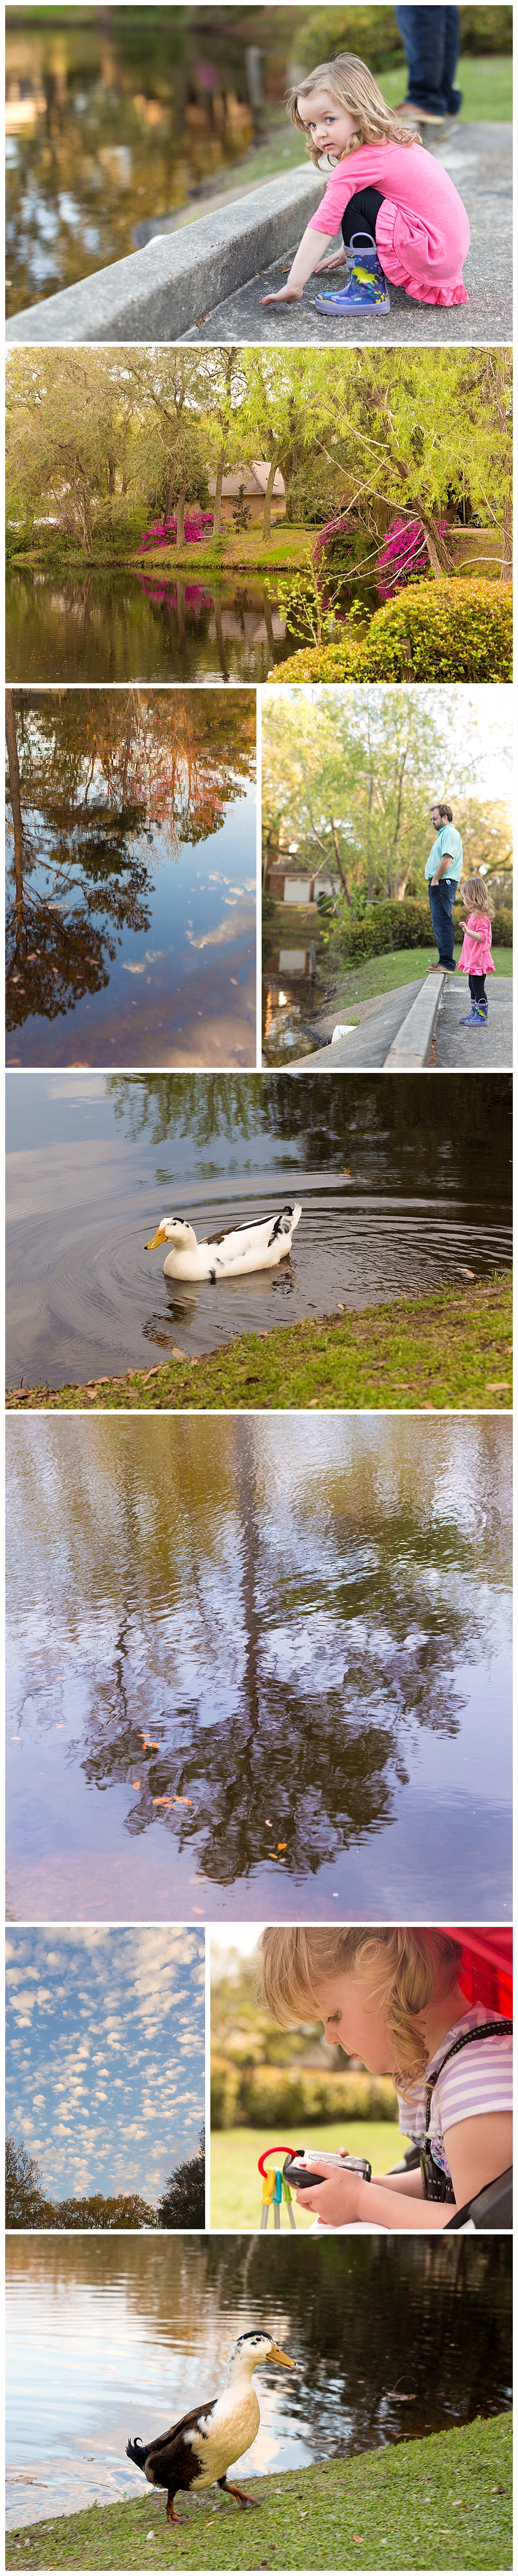 duck pond visits in Ocean Springs, Mississippi - nature and family lifestyle photographer